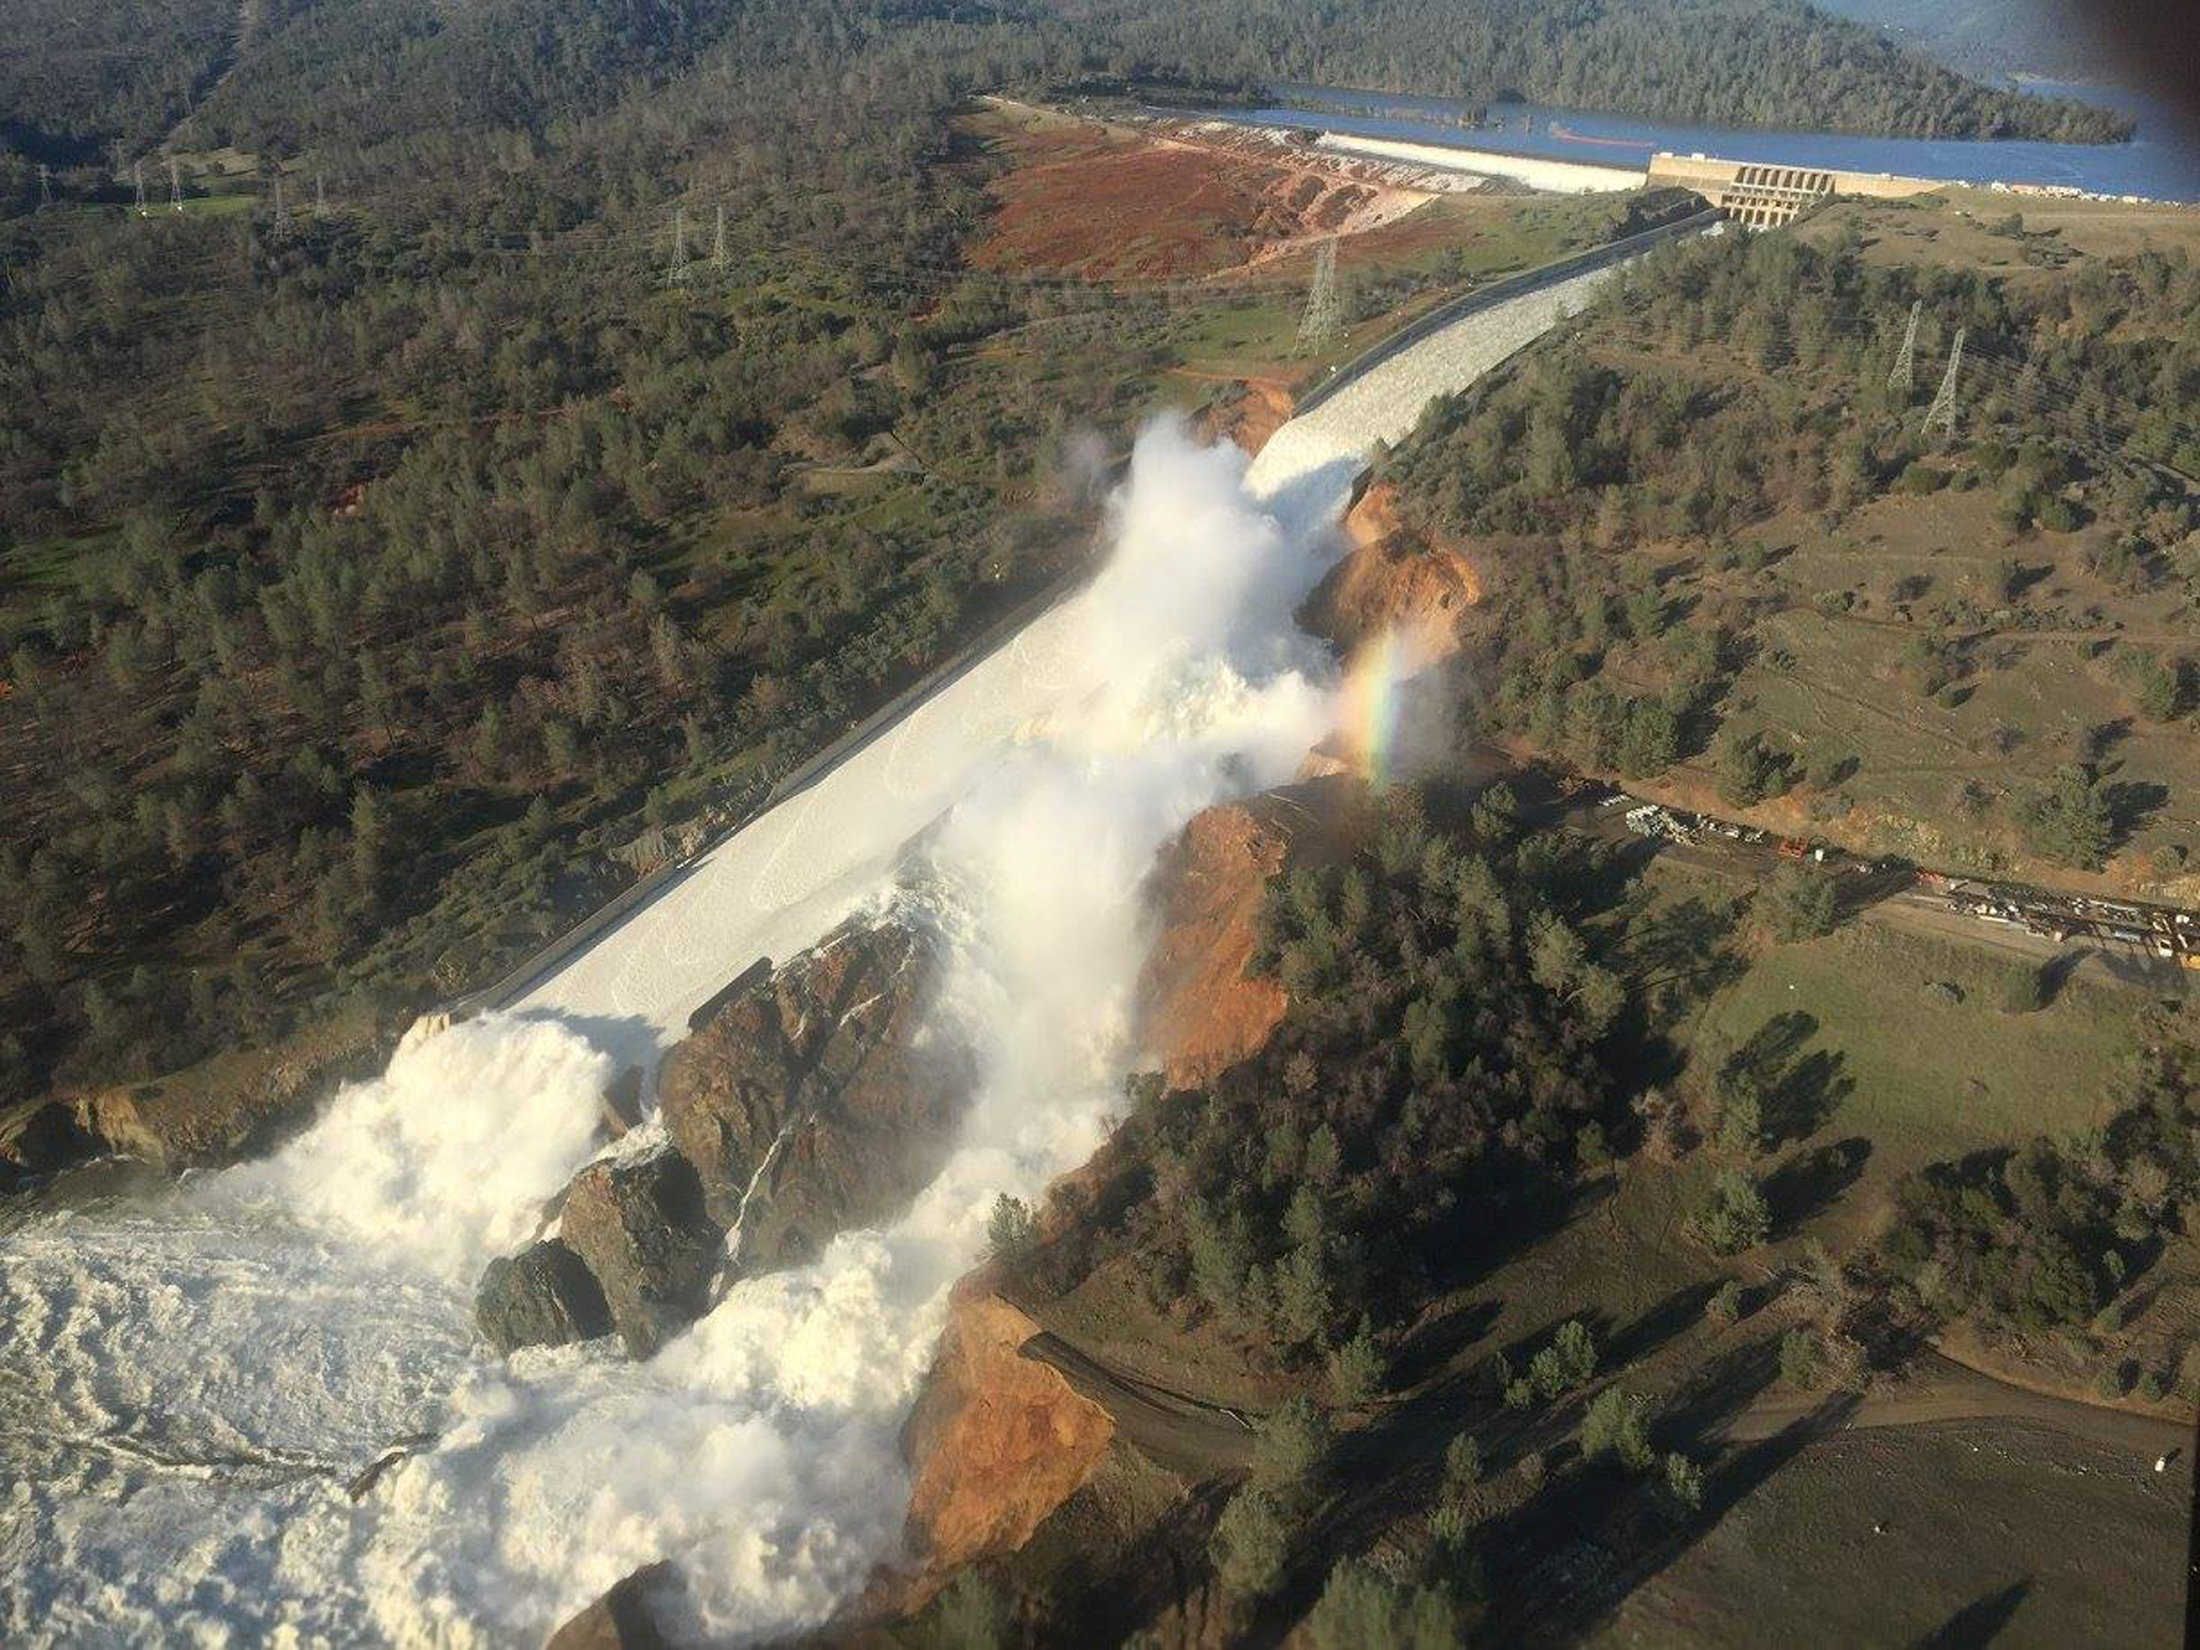 Oroville Dam flooding in Calfornia